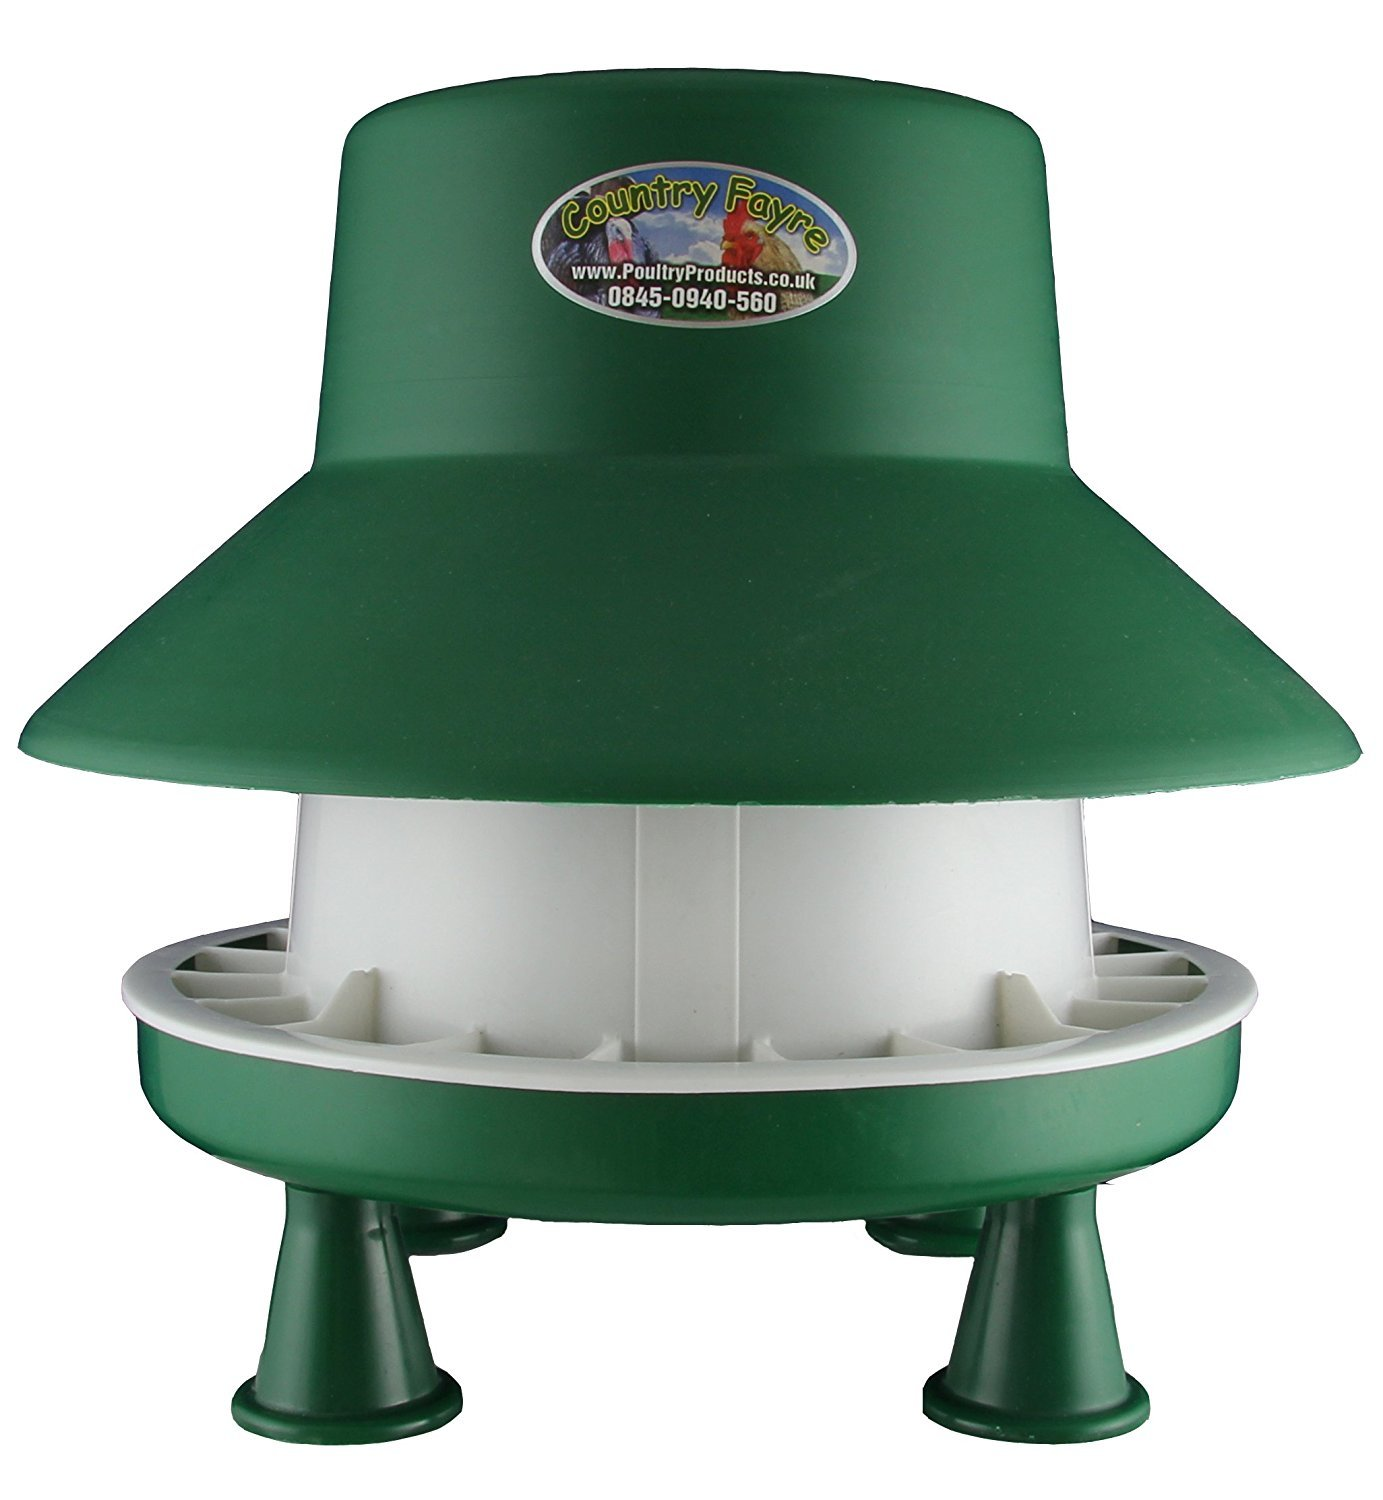 6kg Blenhiem Outdoor Feeder Complete With Legs Green and White Country Fayre (UK) Ltd